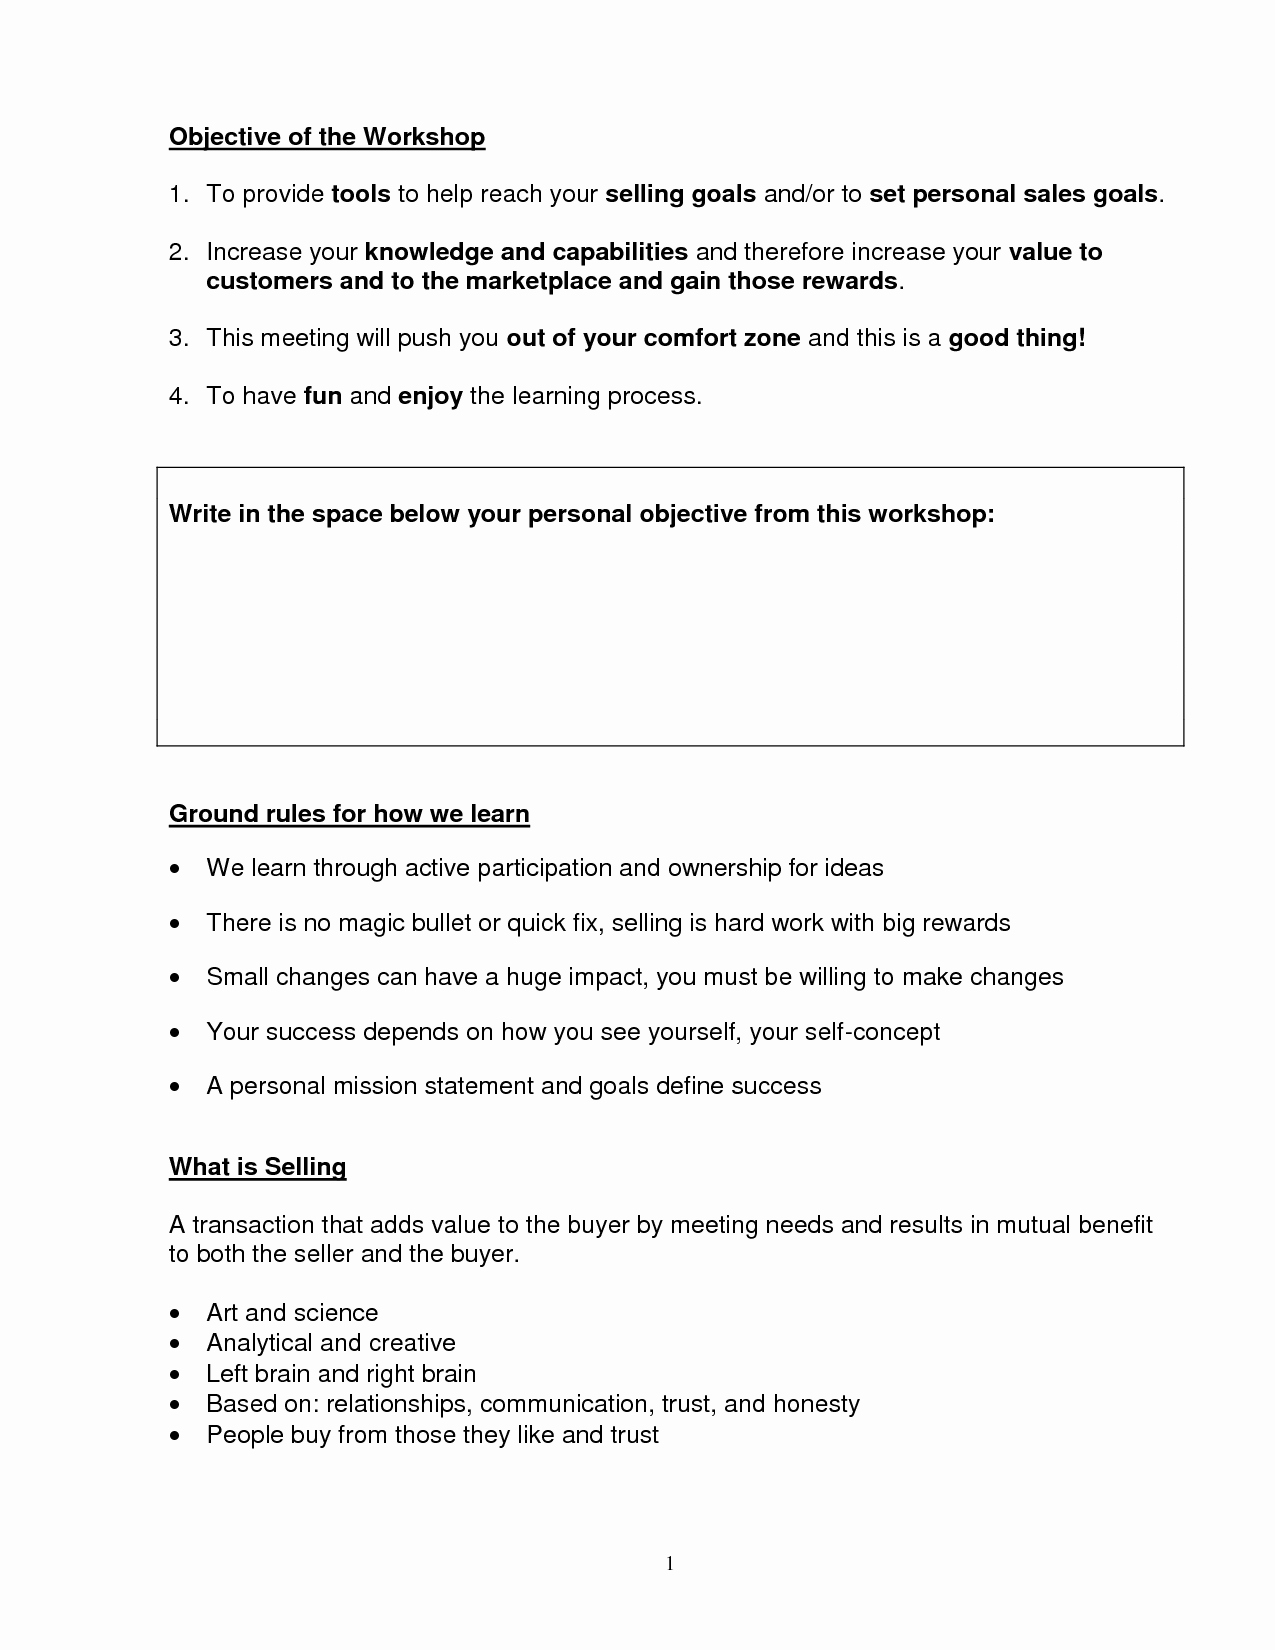 Personal Vision Statements Examples Sludgeport693 Web